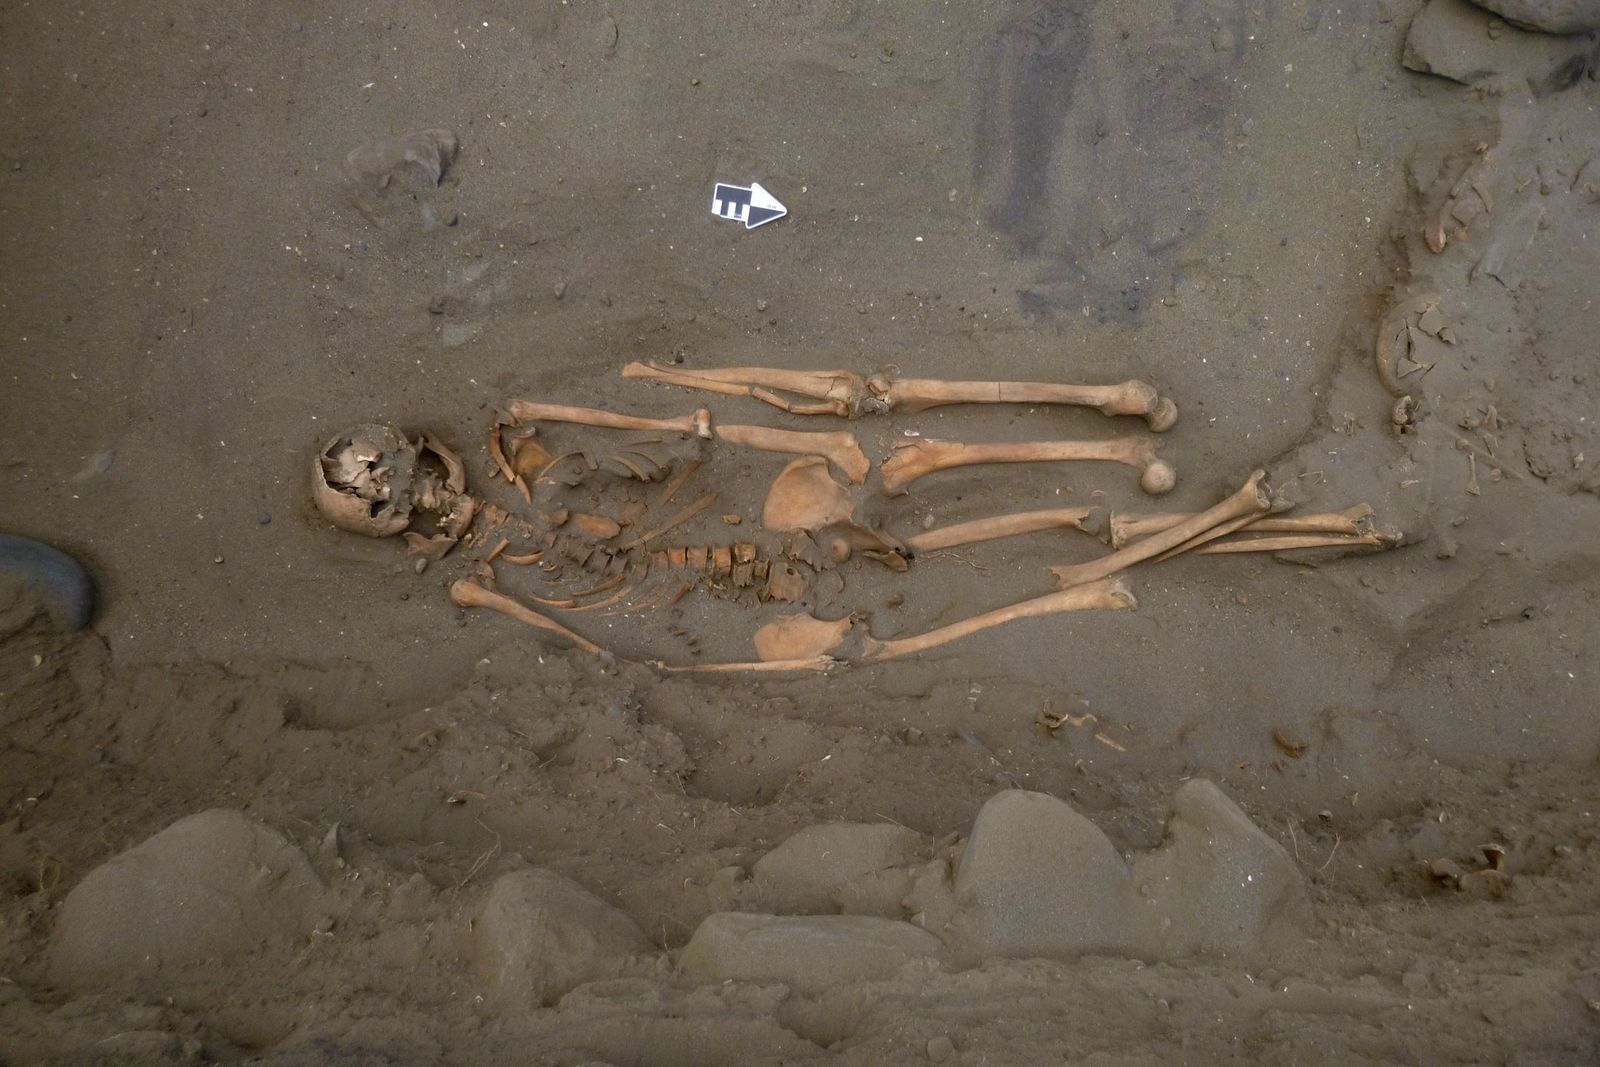 Ancient Shark Fishermen Found Buried with Extra Limbs